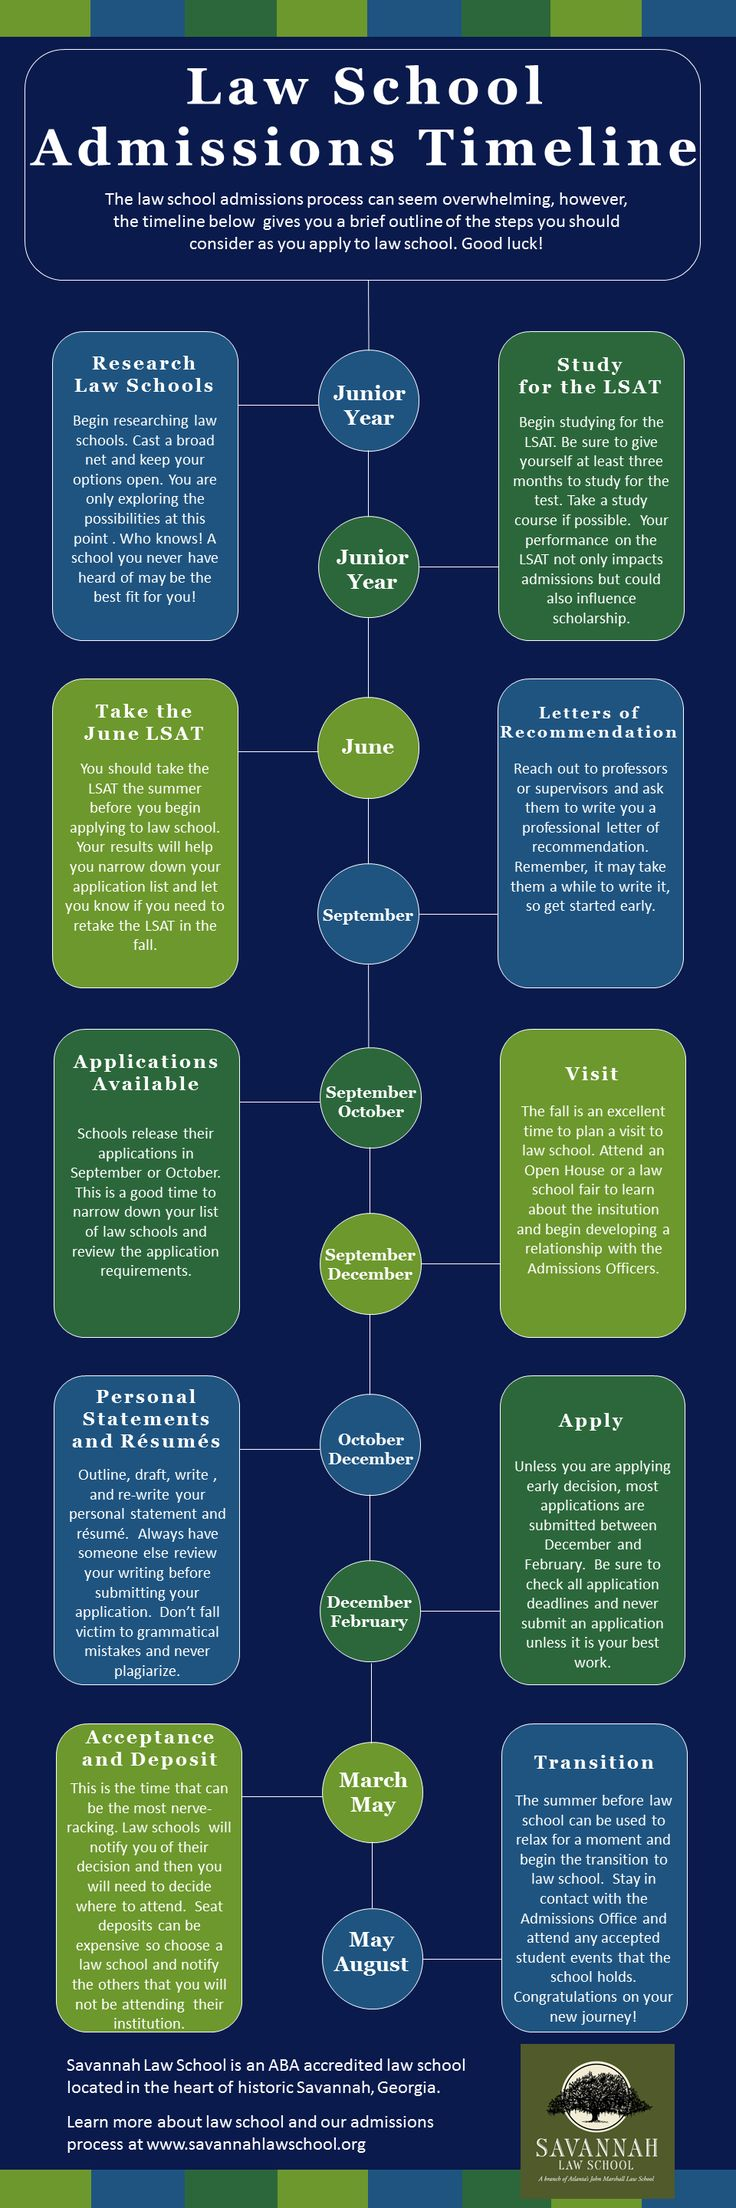 The Law School Admissions Timeline - Study Tips #PinNowReadLater